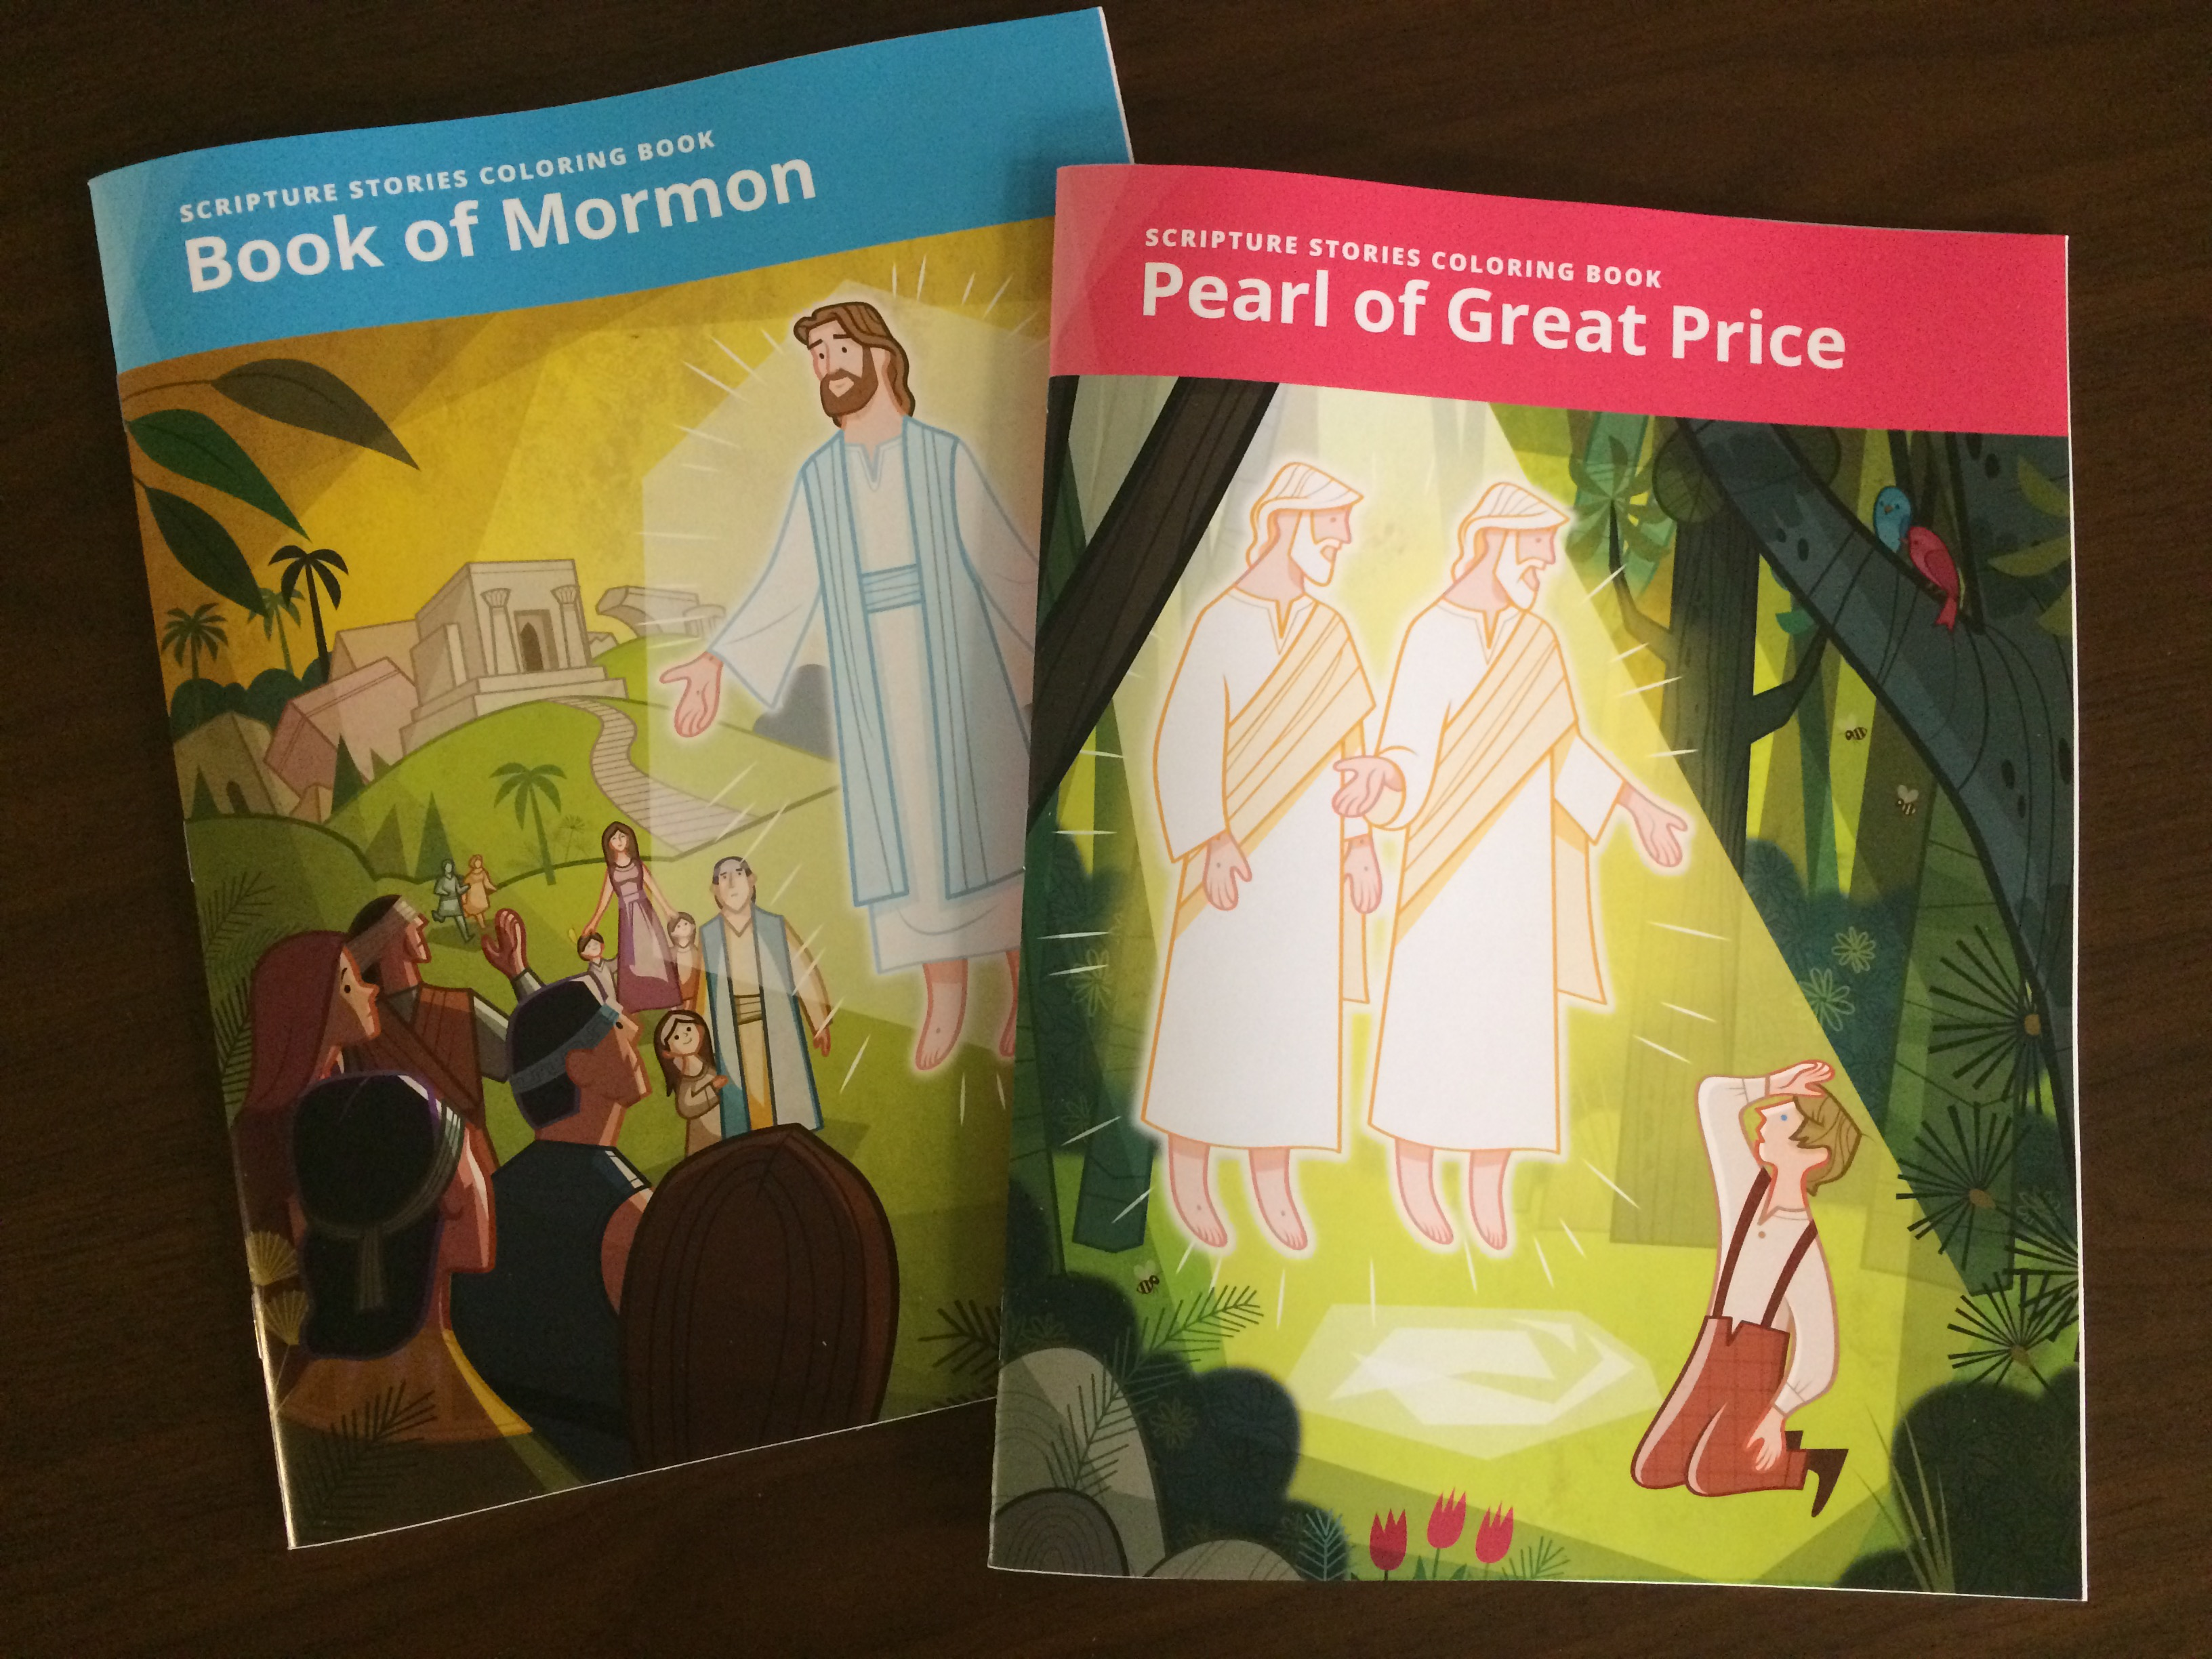 LDS Scriptures Stories Coloring Books